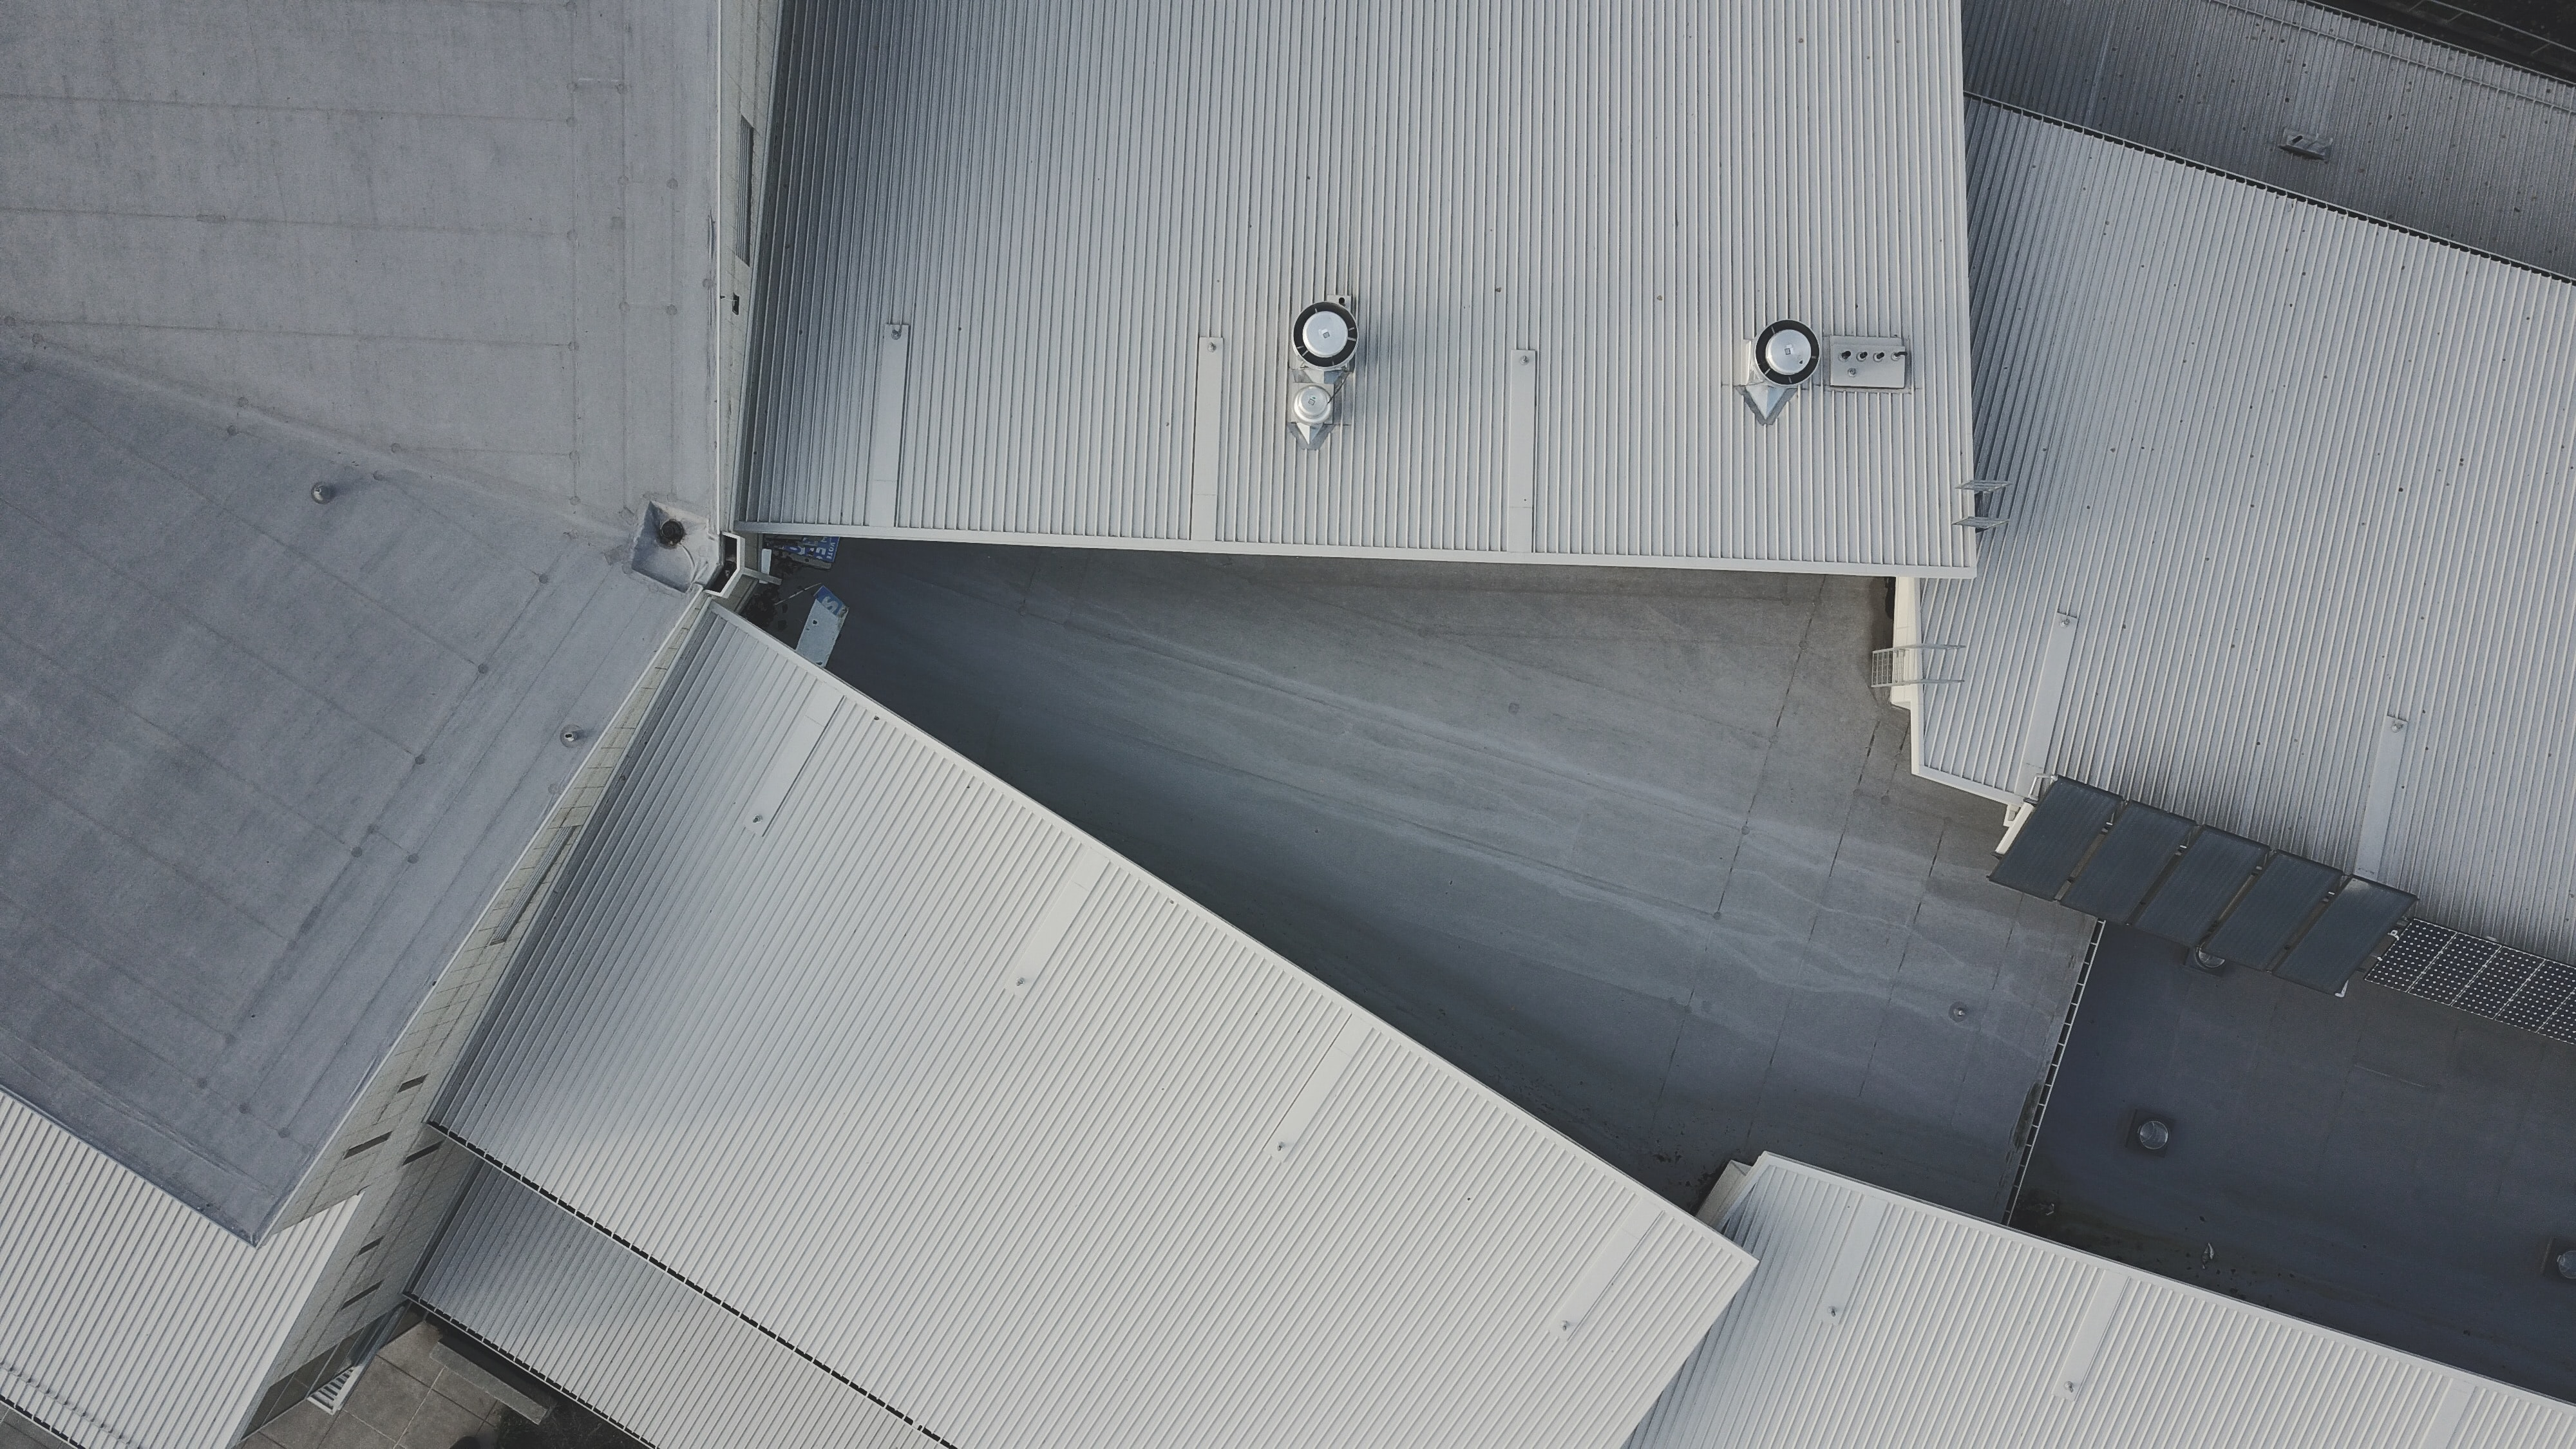 A drone shot of white industrial buildings